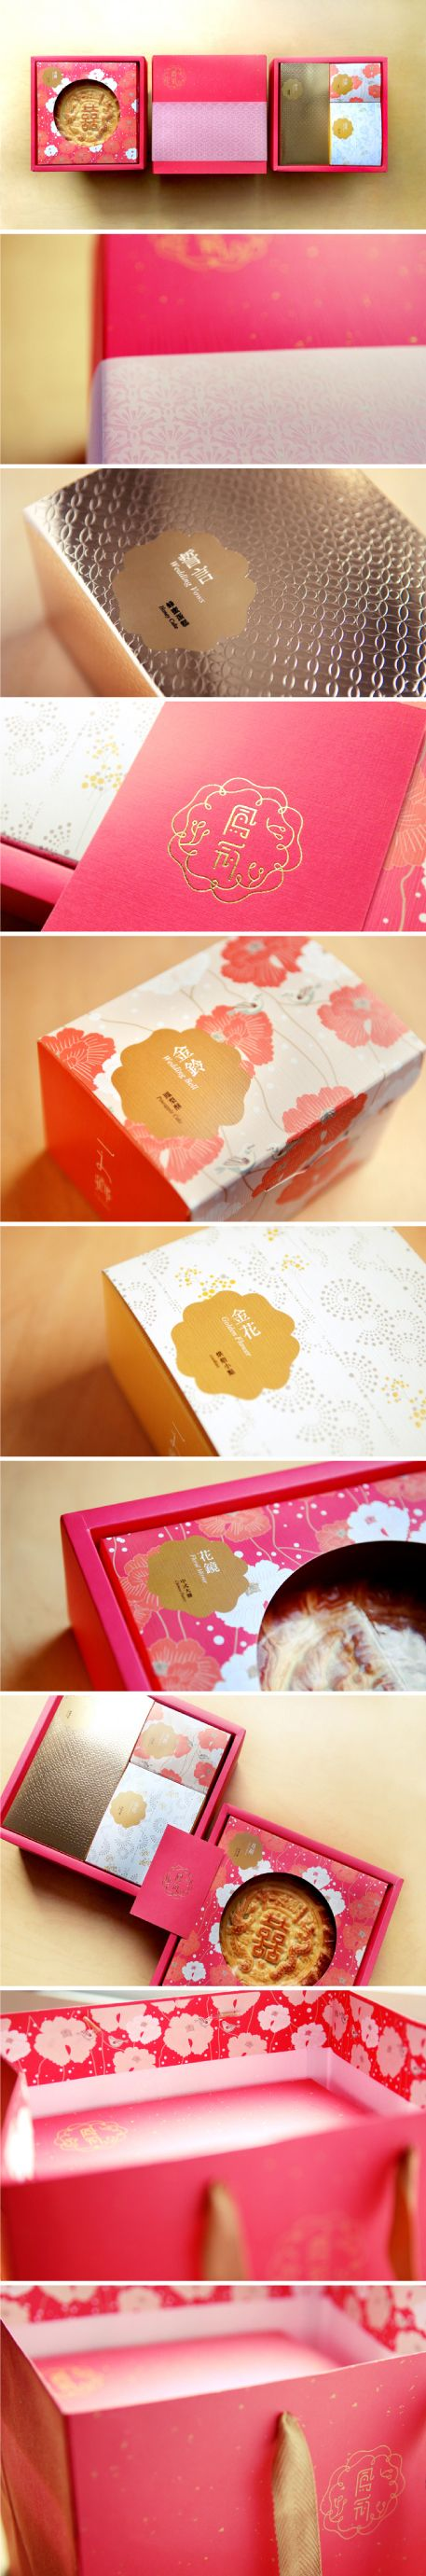 一之鄉 /《鳳冠》中式喜餅 / MURA DESIGN beautiful cakes packaging. Another gorgeous example PD